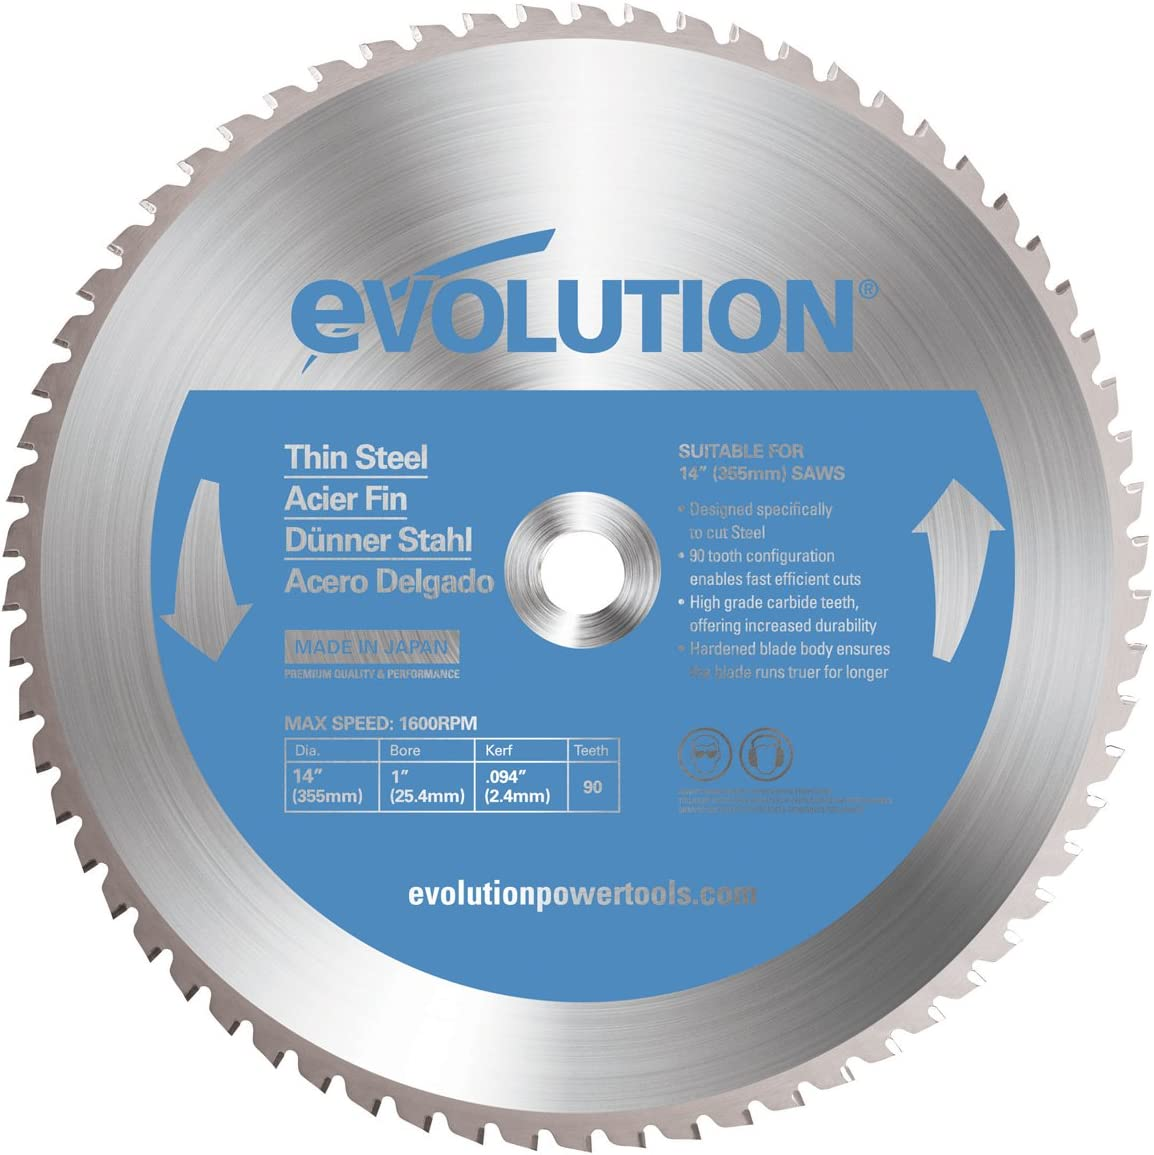 Evolution Power Tools 14BLADETS Tooth Thin Steel Cutting Blade